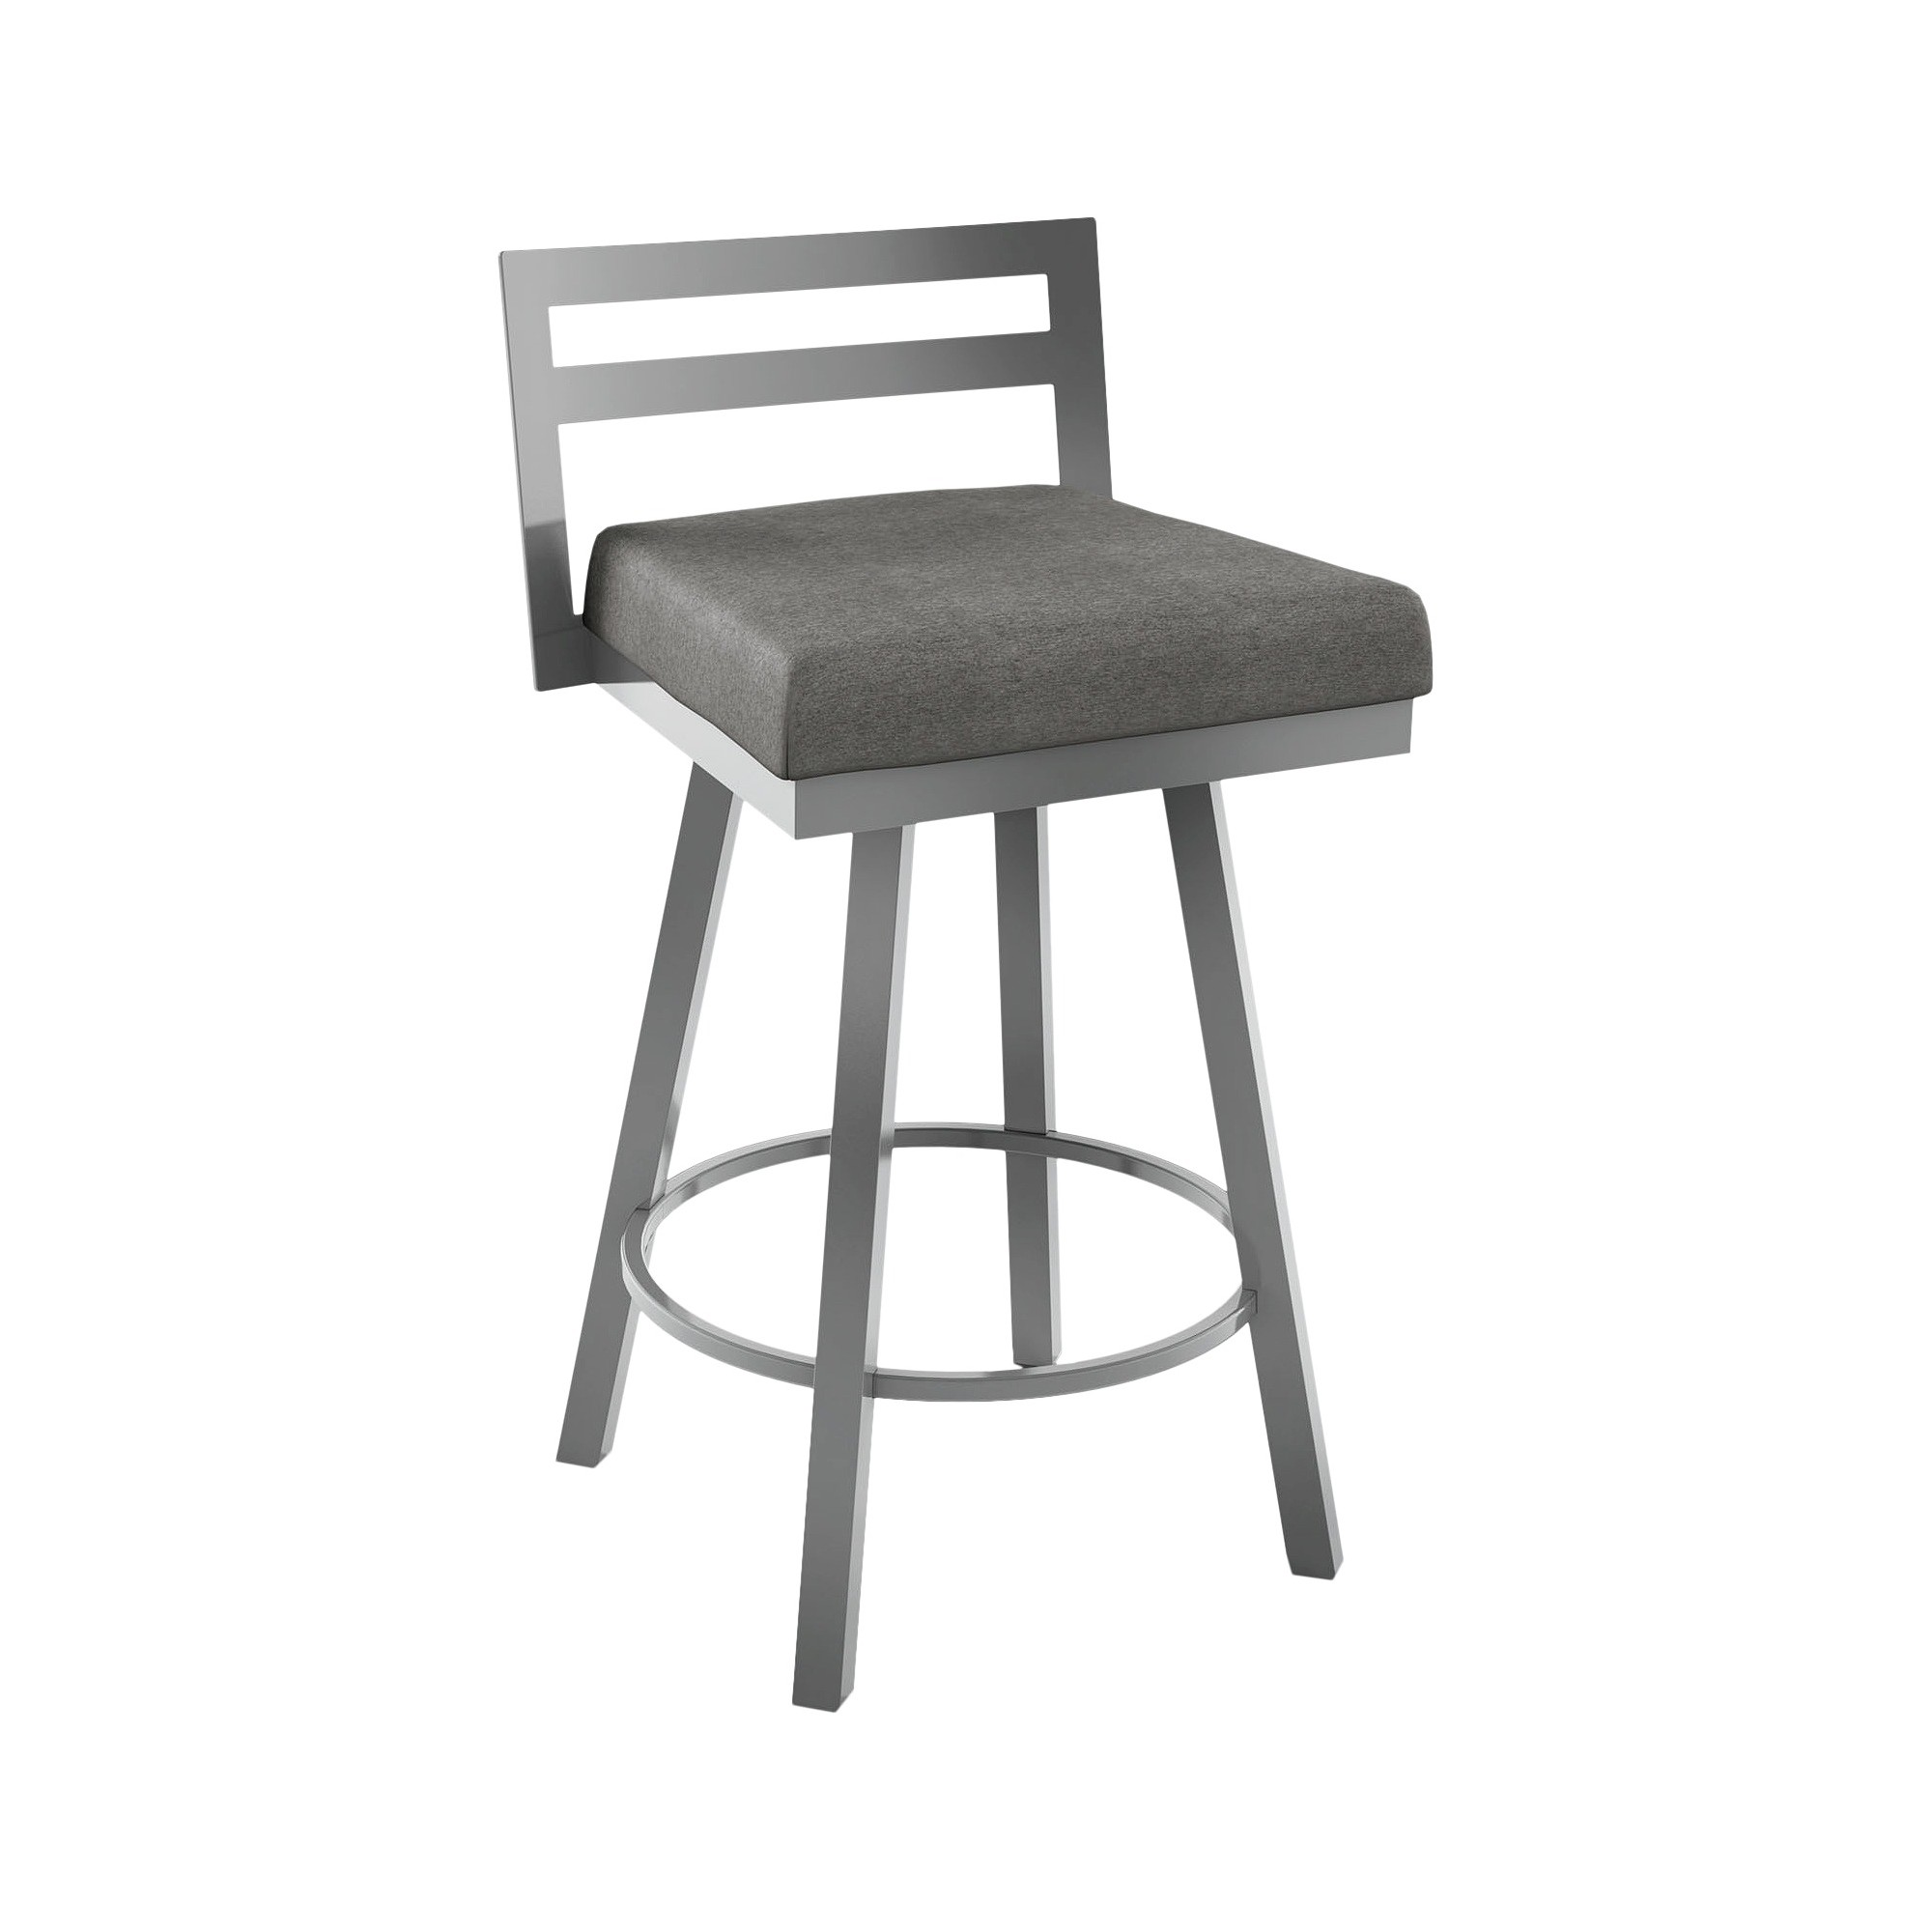 Awesome Amisco Derek 26 Counter Stool Gray Products Swivel Bralicious Painted Fabric Chair Ideas Braliciousco